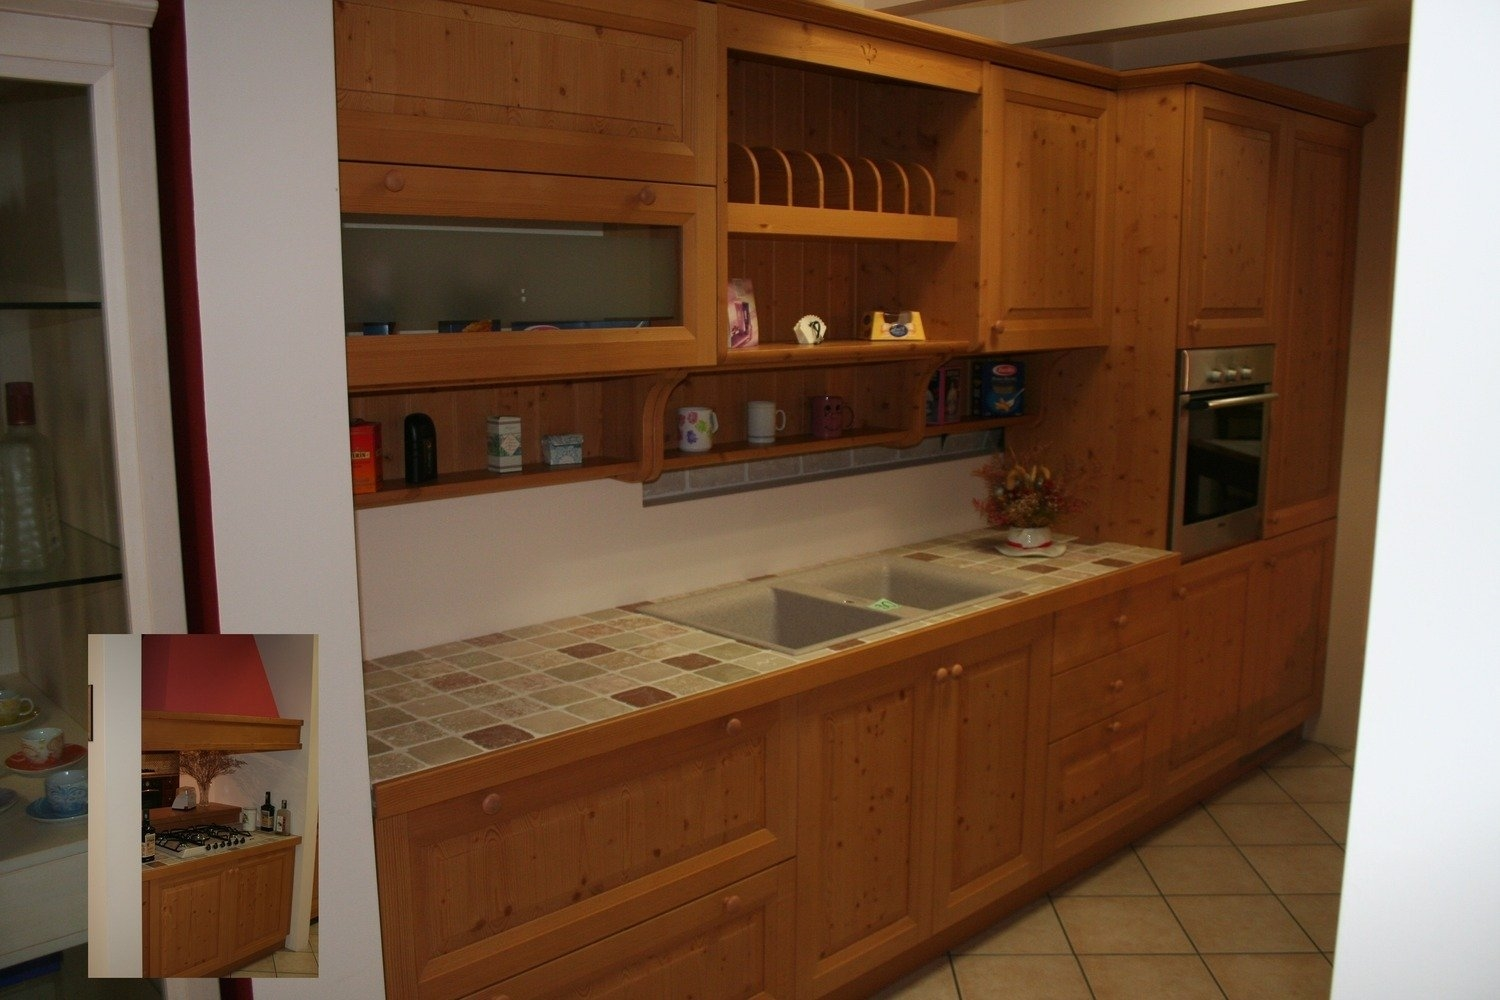 Cucine lineari 360 country - Cucine low cost ...